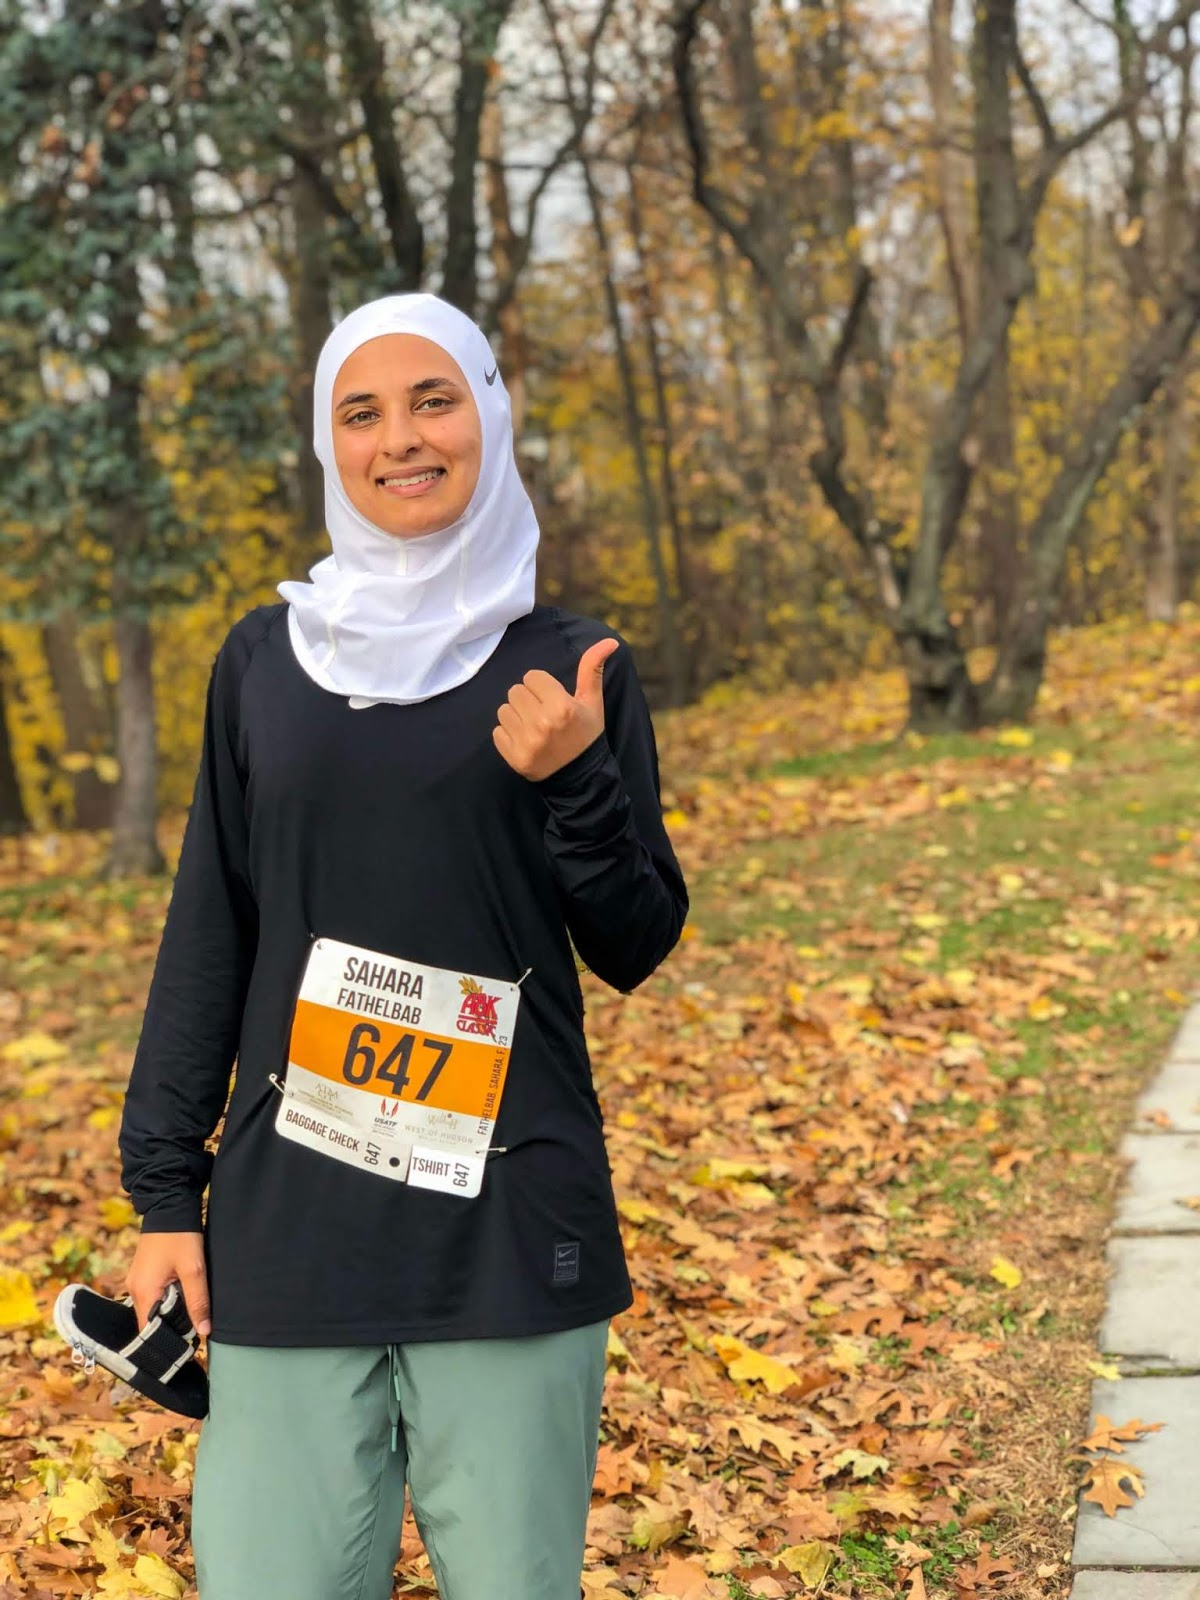 sahara after 8K race - thumbs up standing in front of trees and leaves